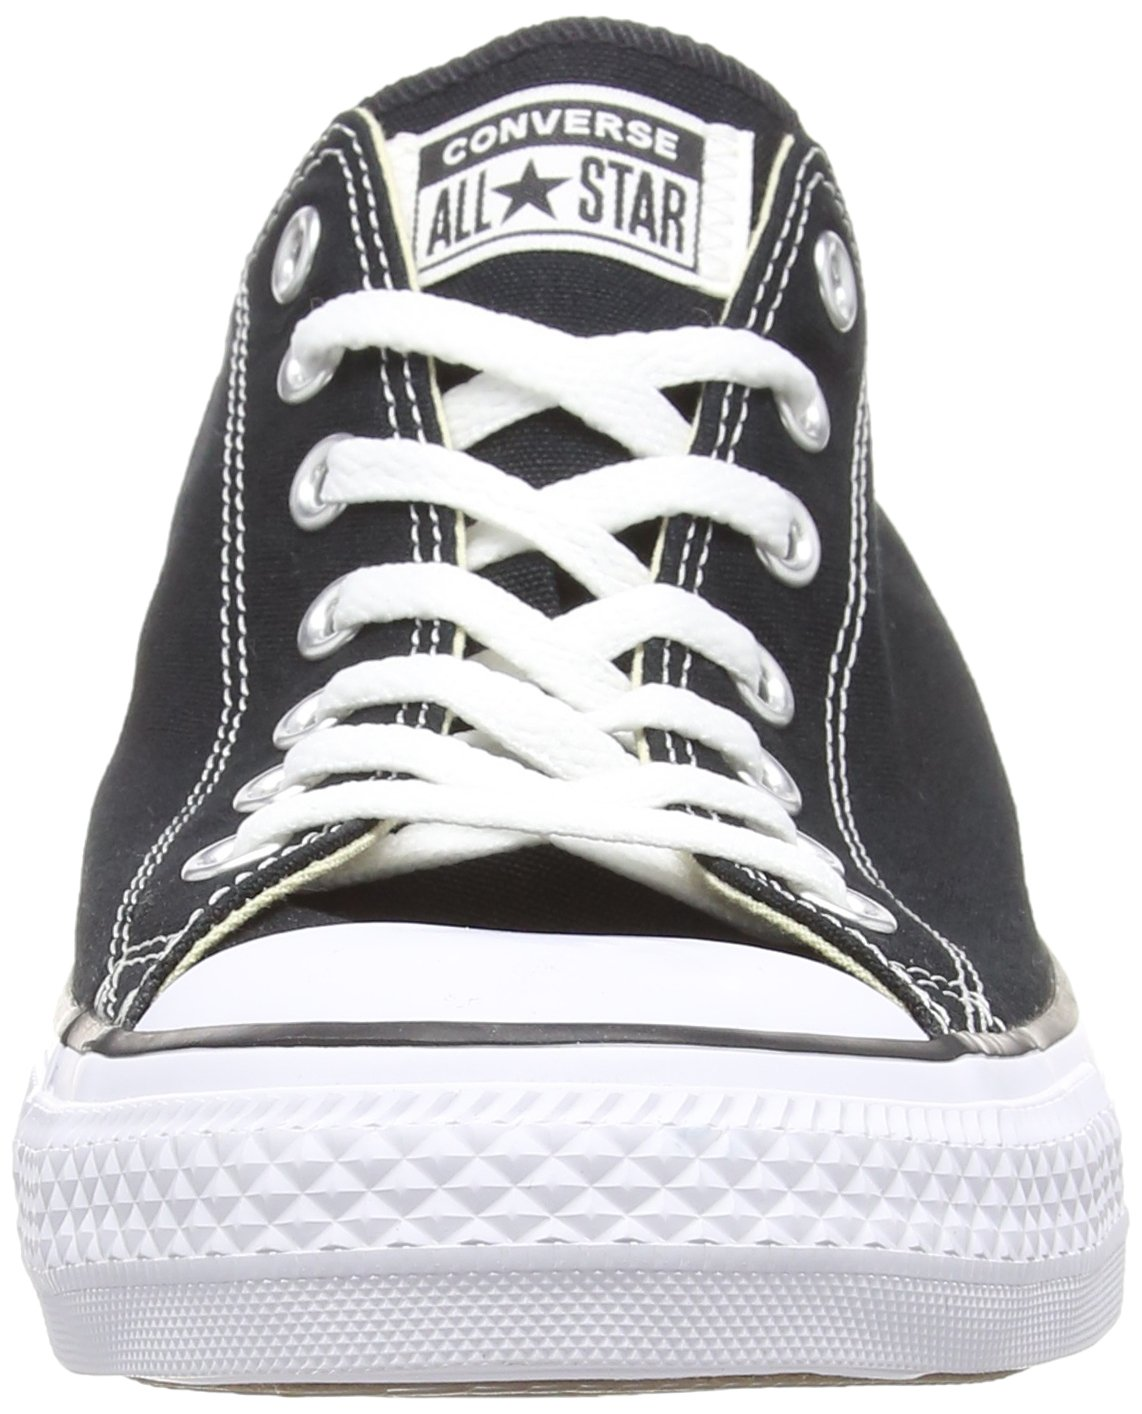 Converse Chuck Taylor All Star Canvas Low Top Sneaker B07FDM68YY 41-42 M EU / 10 B(M) US Women / 8 D(M) US Men|Black